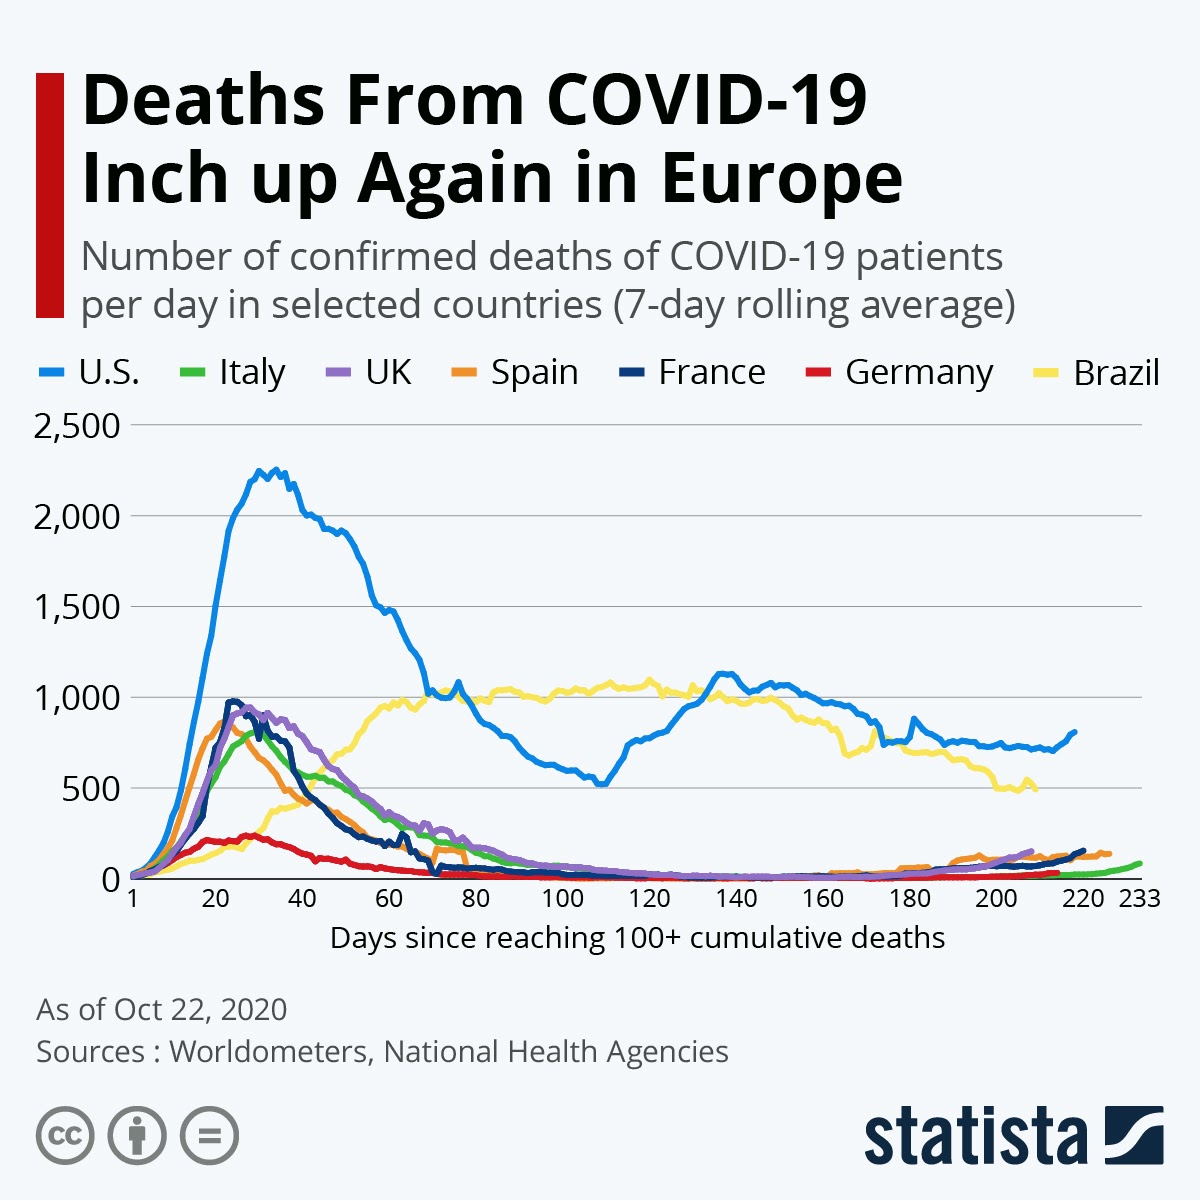 Deaths From COVID-19 Inch up Again in Europe #infographic